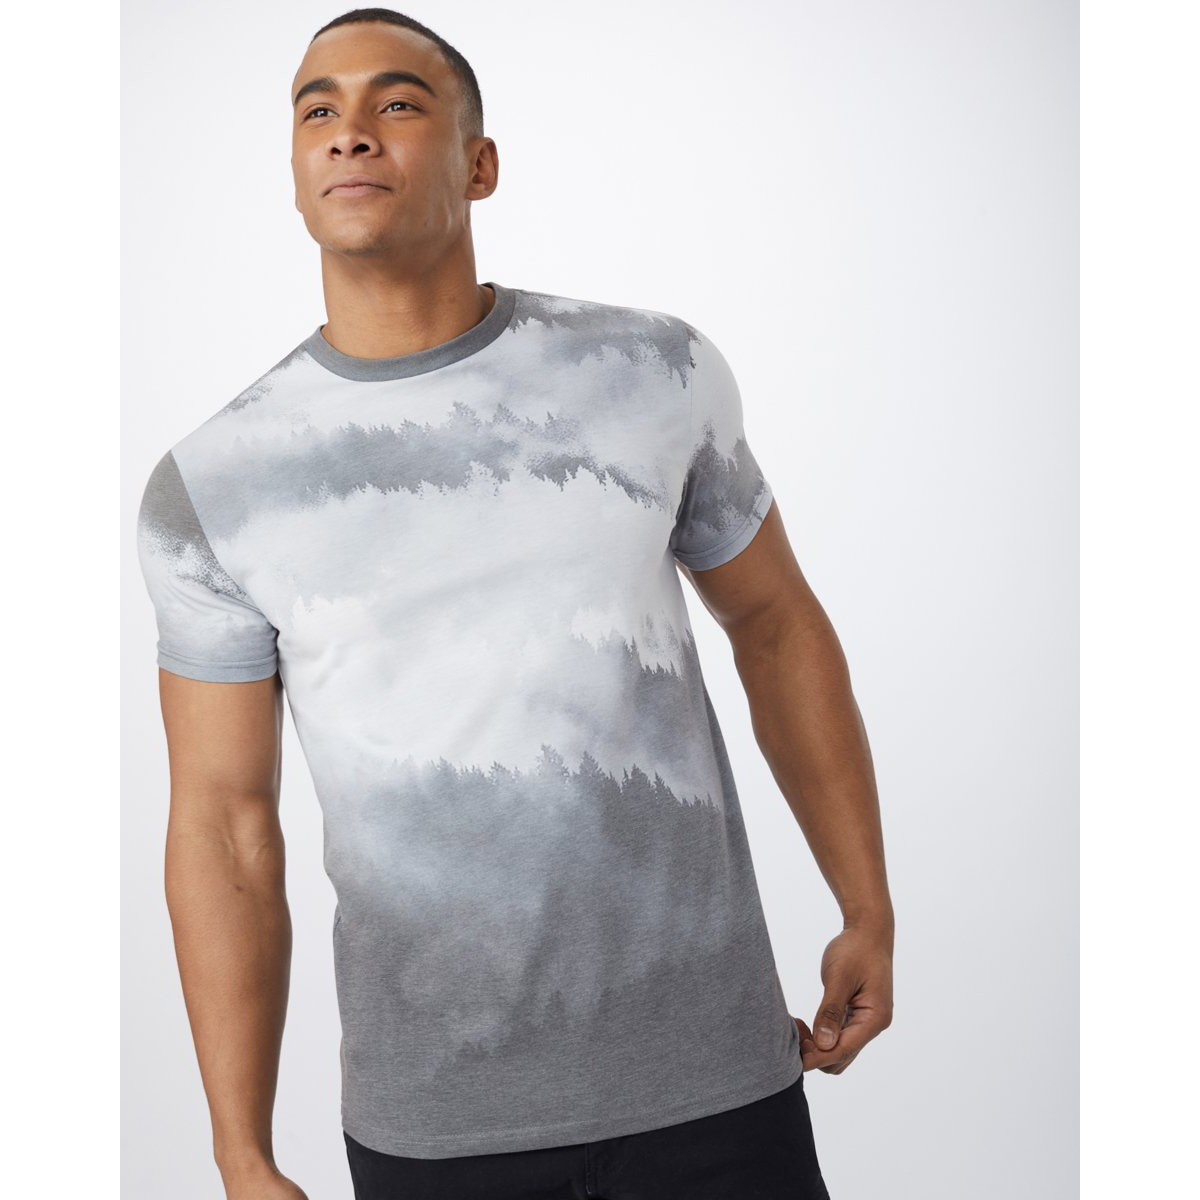 Foggy Mountains Tee - Men's